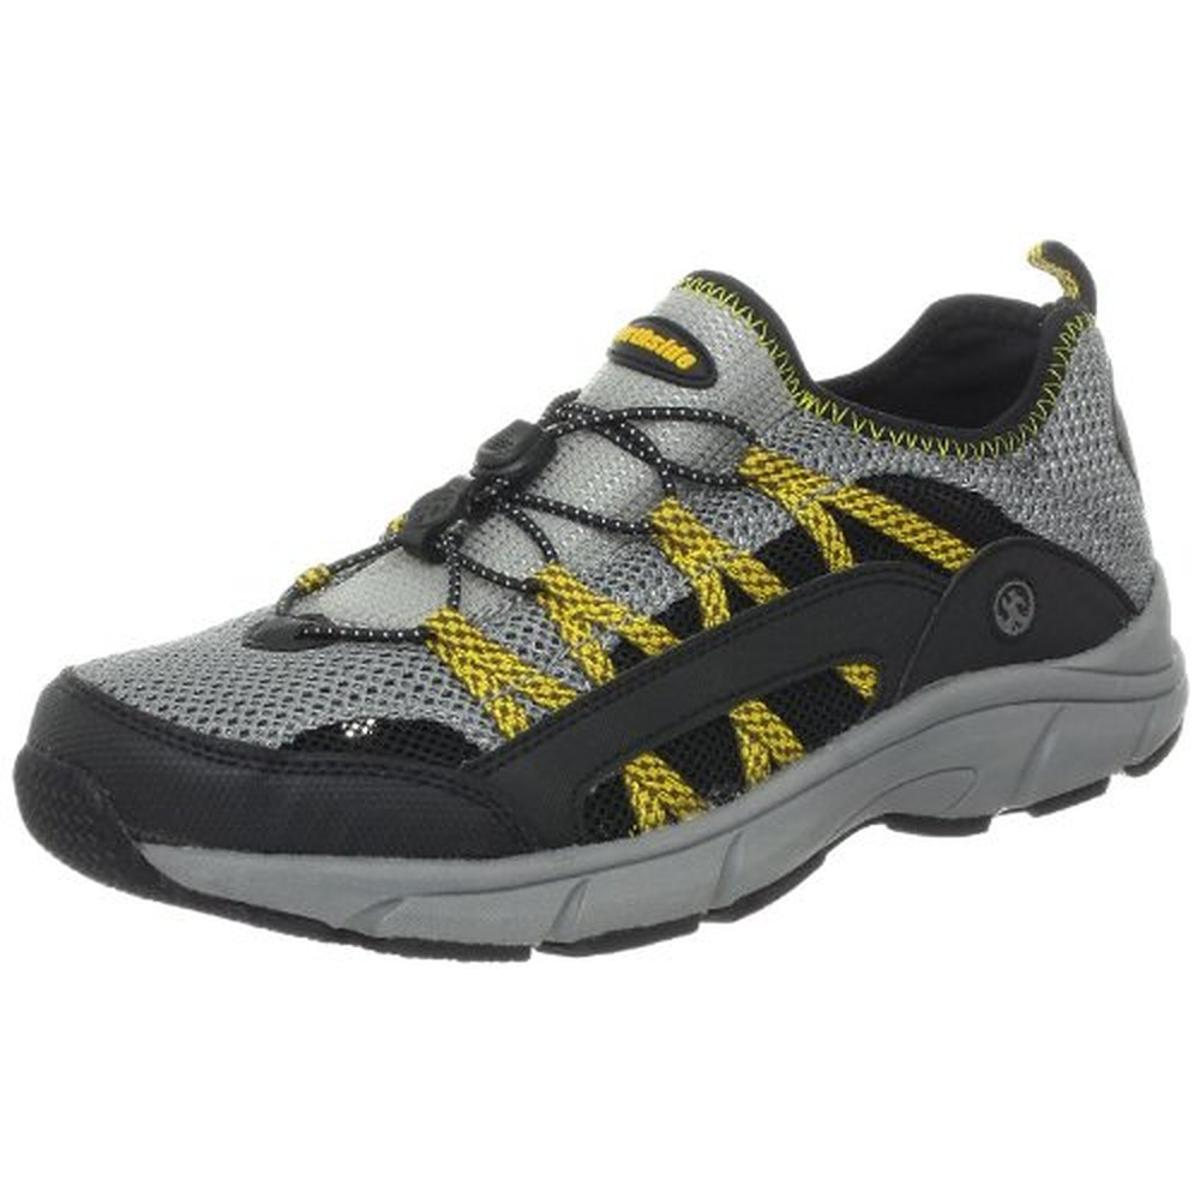 Northside Mens Raging River Mesh Outdoor Hiking, Trail Shoes